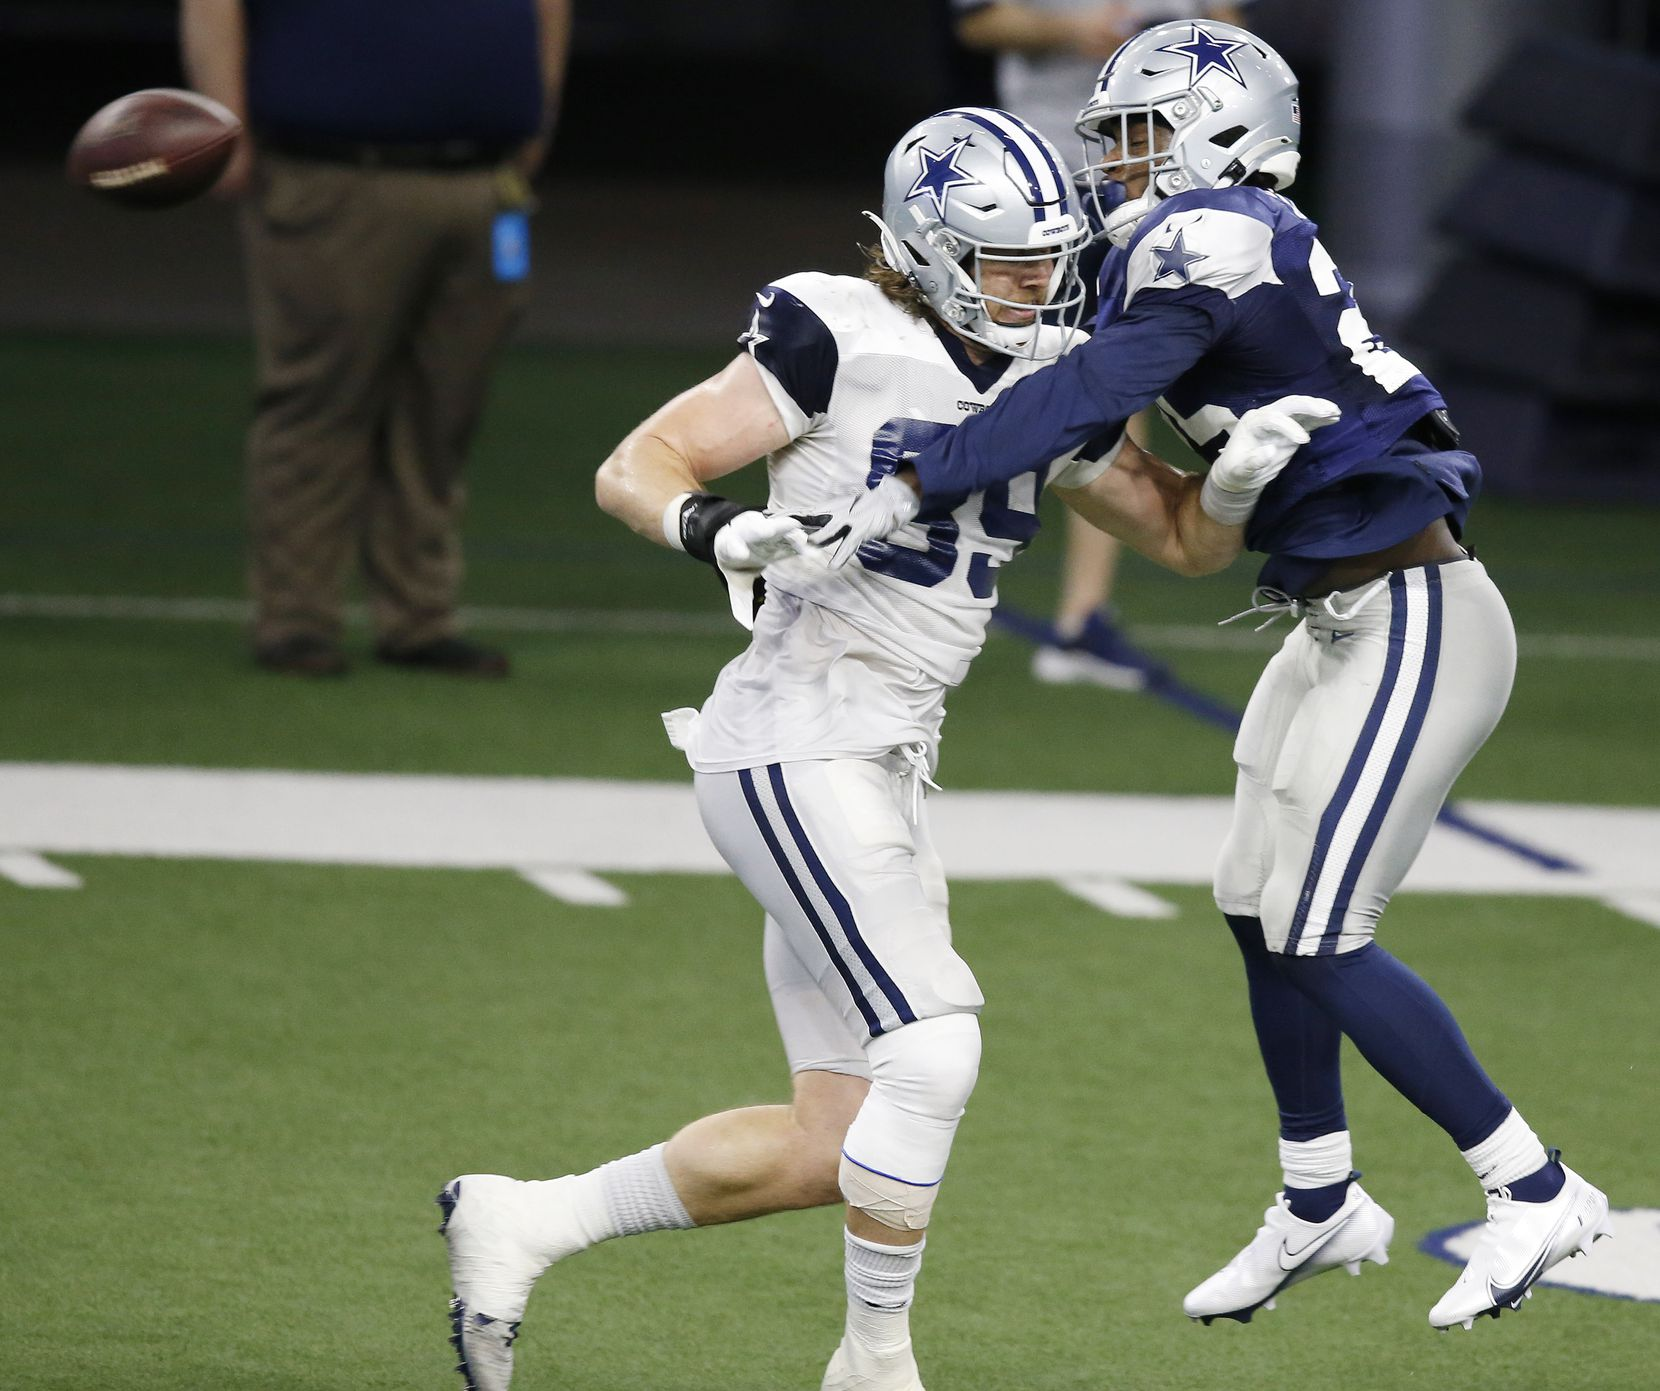 Dallas Cowboys safety Xavier Woods (25) breaks up a pass intended for Dallas Cowboys tight end Blake Jarwin (89) during training camp at the Dallas Cowboys headquarters at The Star in Frisco, Texas on Thursday, August 27, 2020. (Vernon Bryant/The Dallas Morning News)